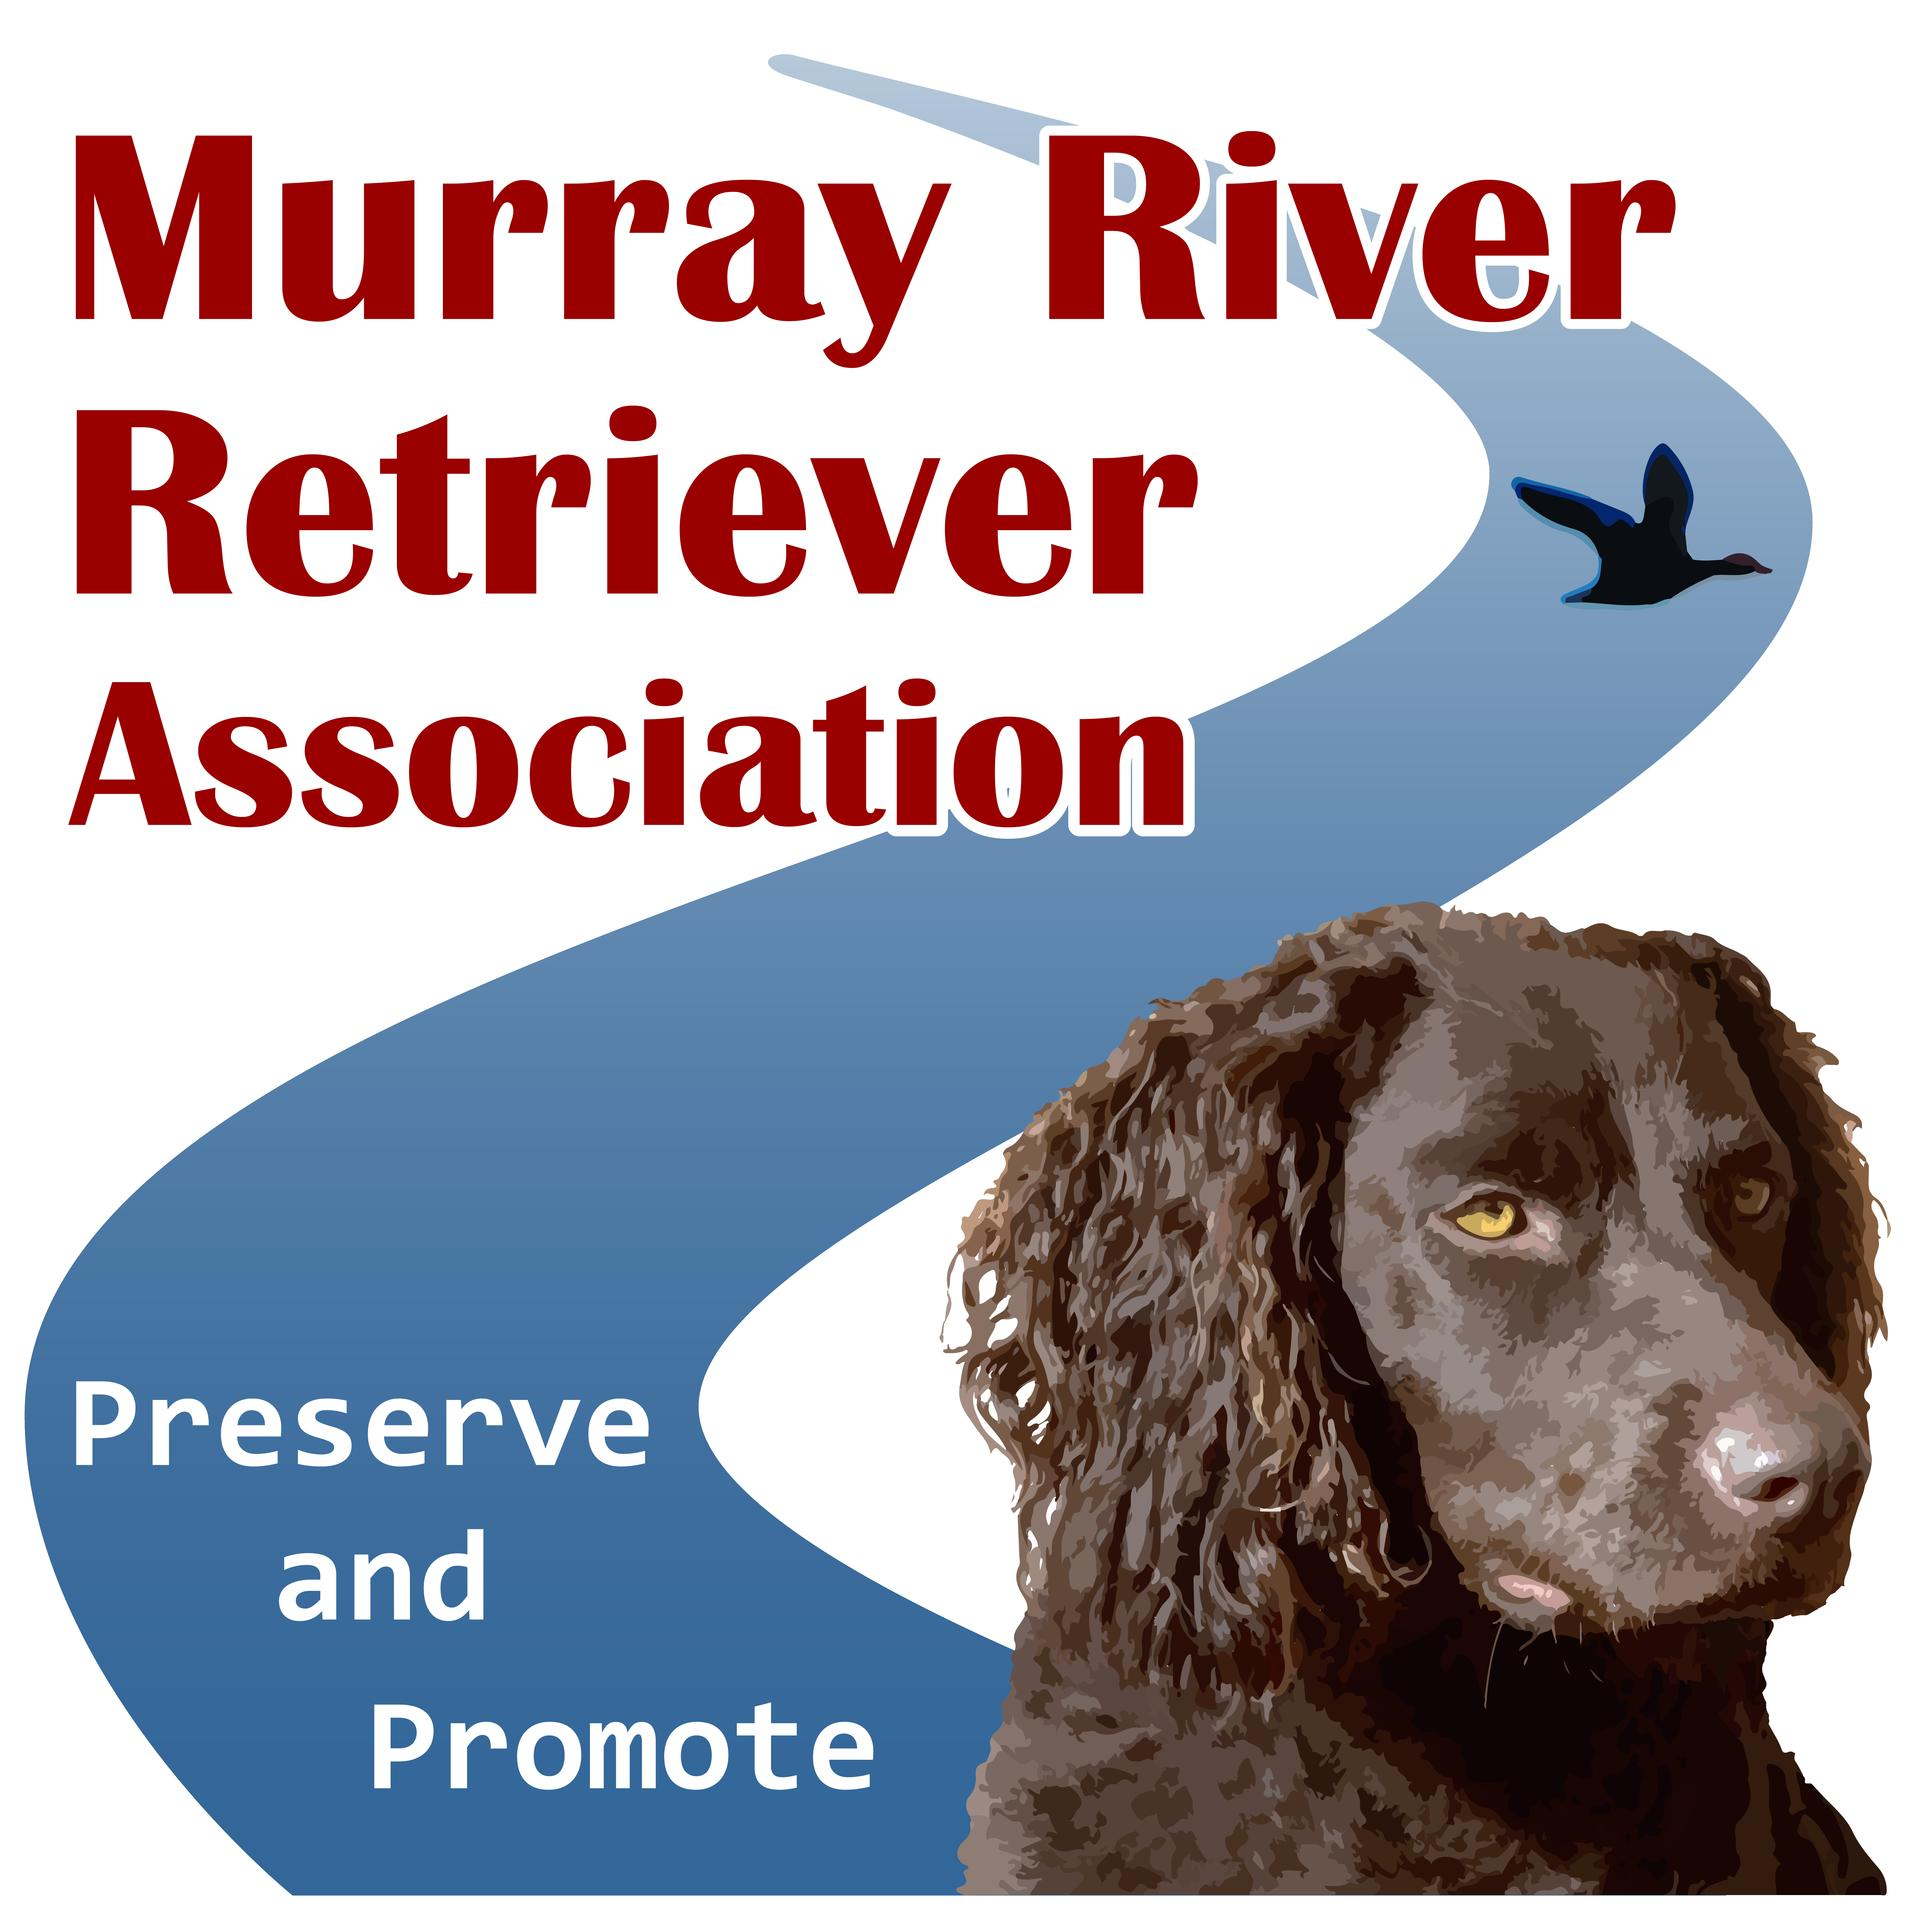 Murray River Retriever Association